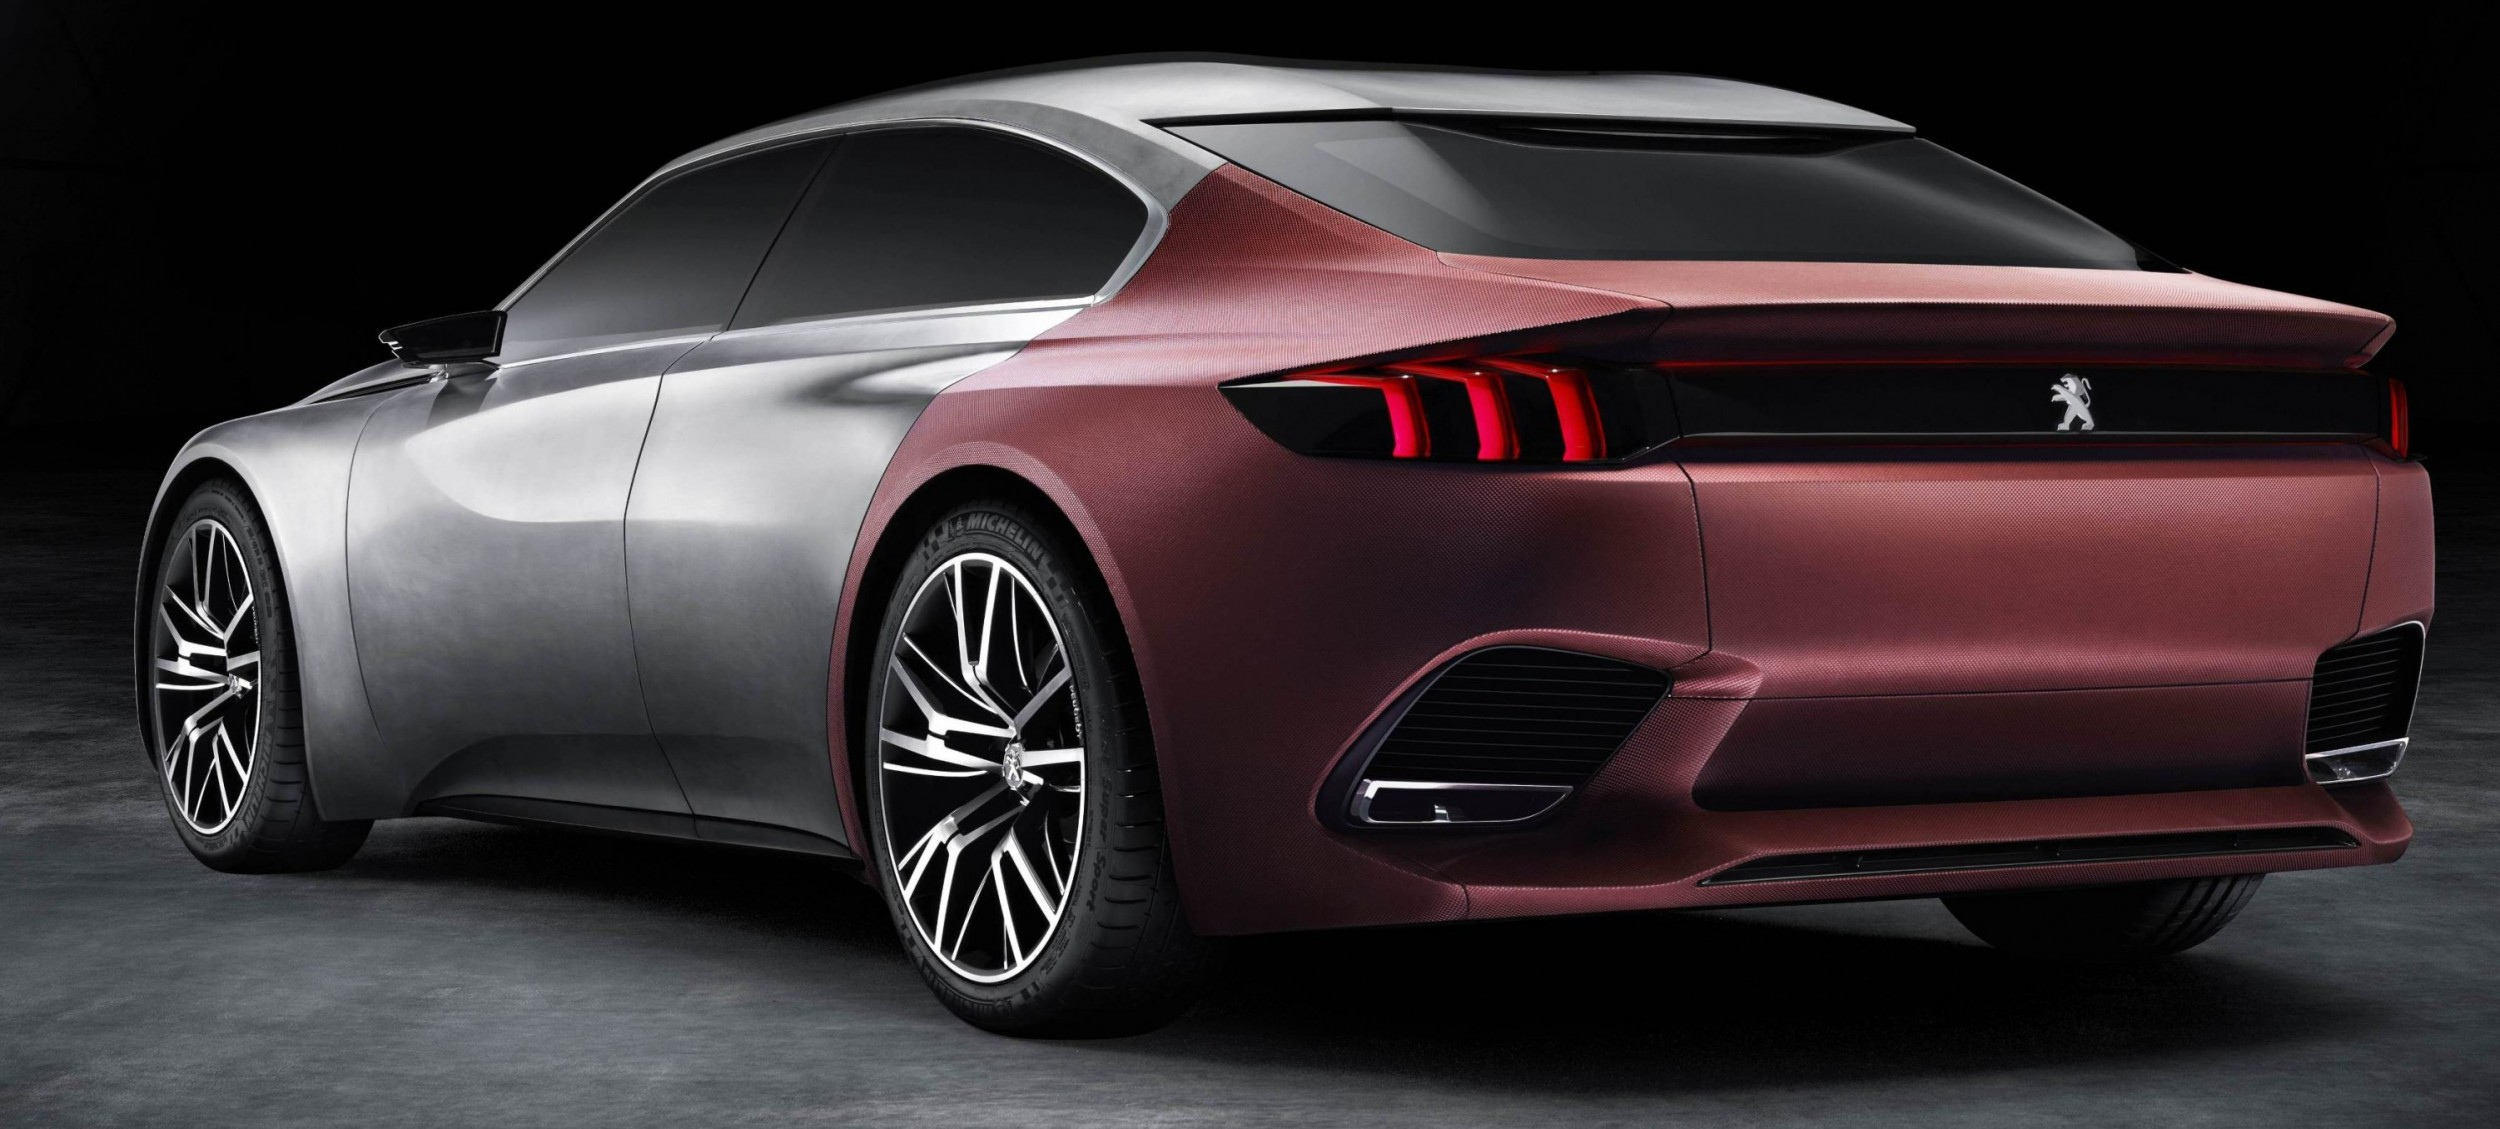 Annotated Design Analysis Peugeot Exalt How To Make The 2016 Peogeot 509 Sexy Mazda6 Vs